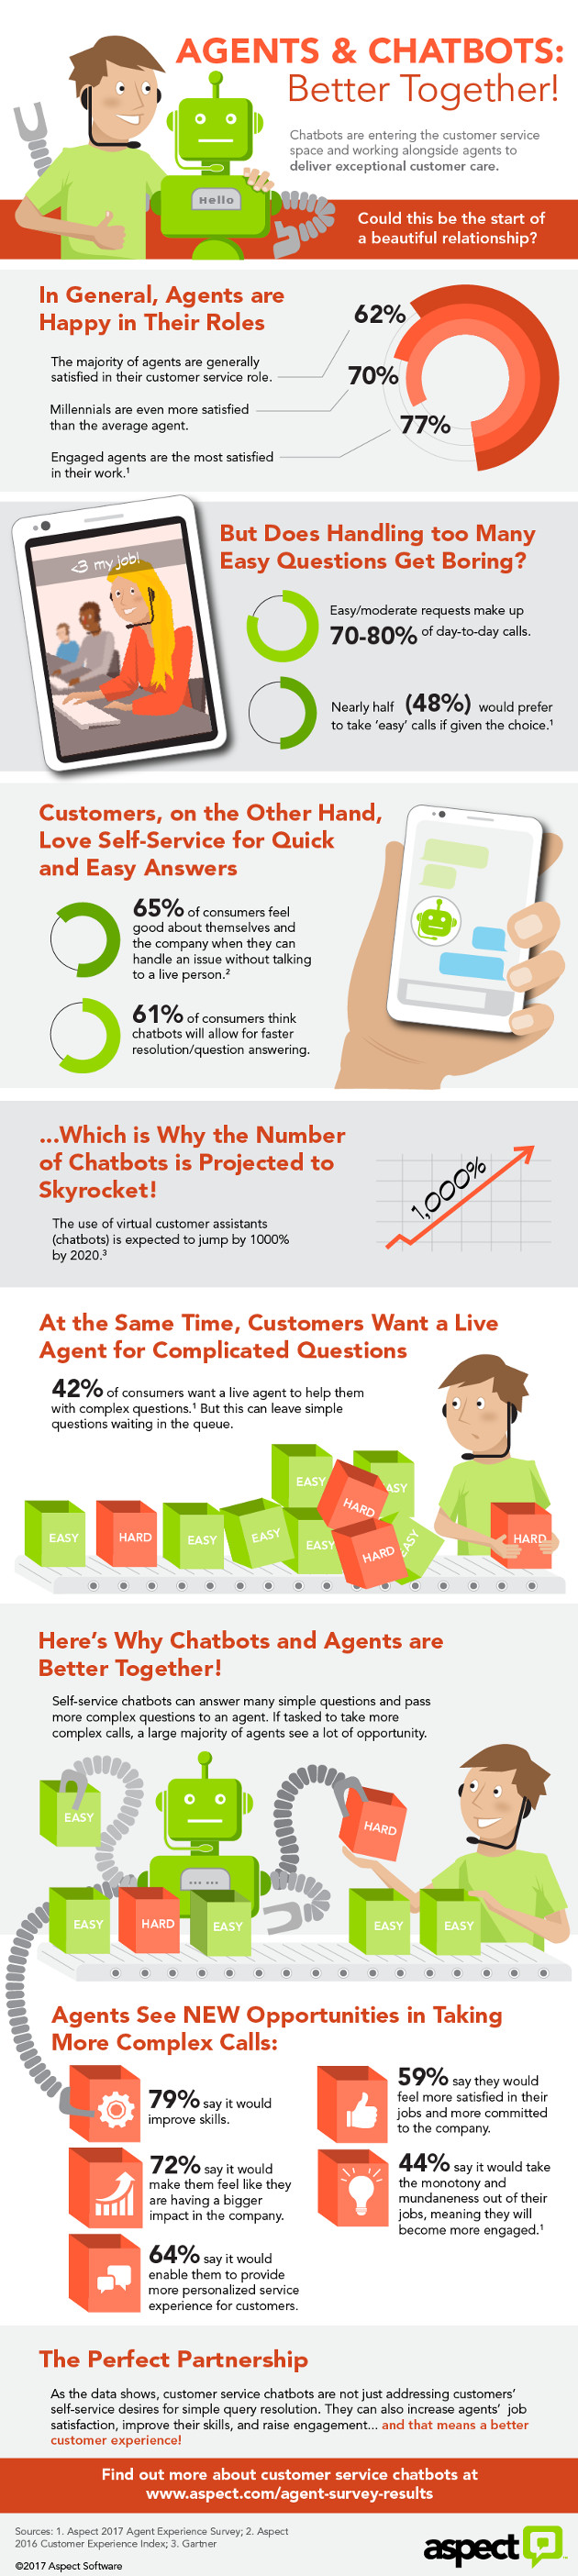 Agents-Chatbots Combo, A Beautiful Relationship [Infographic]